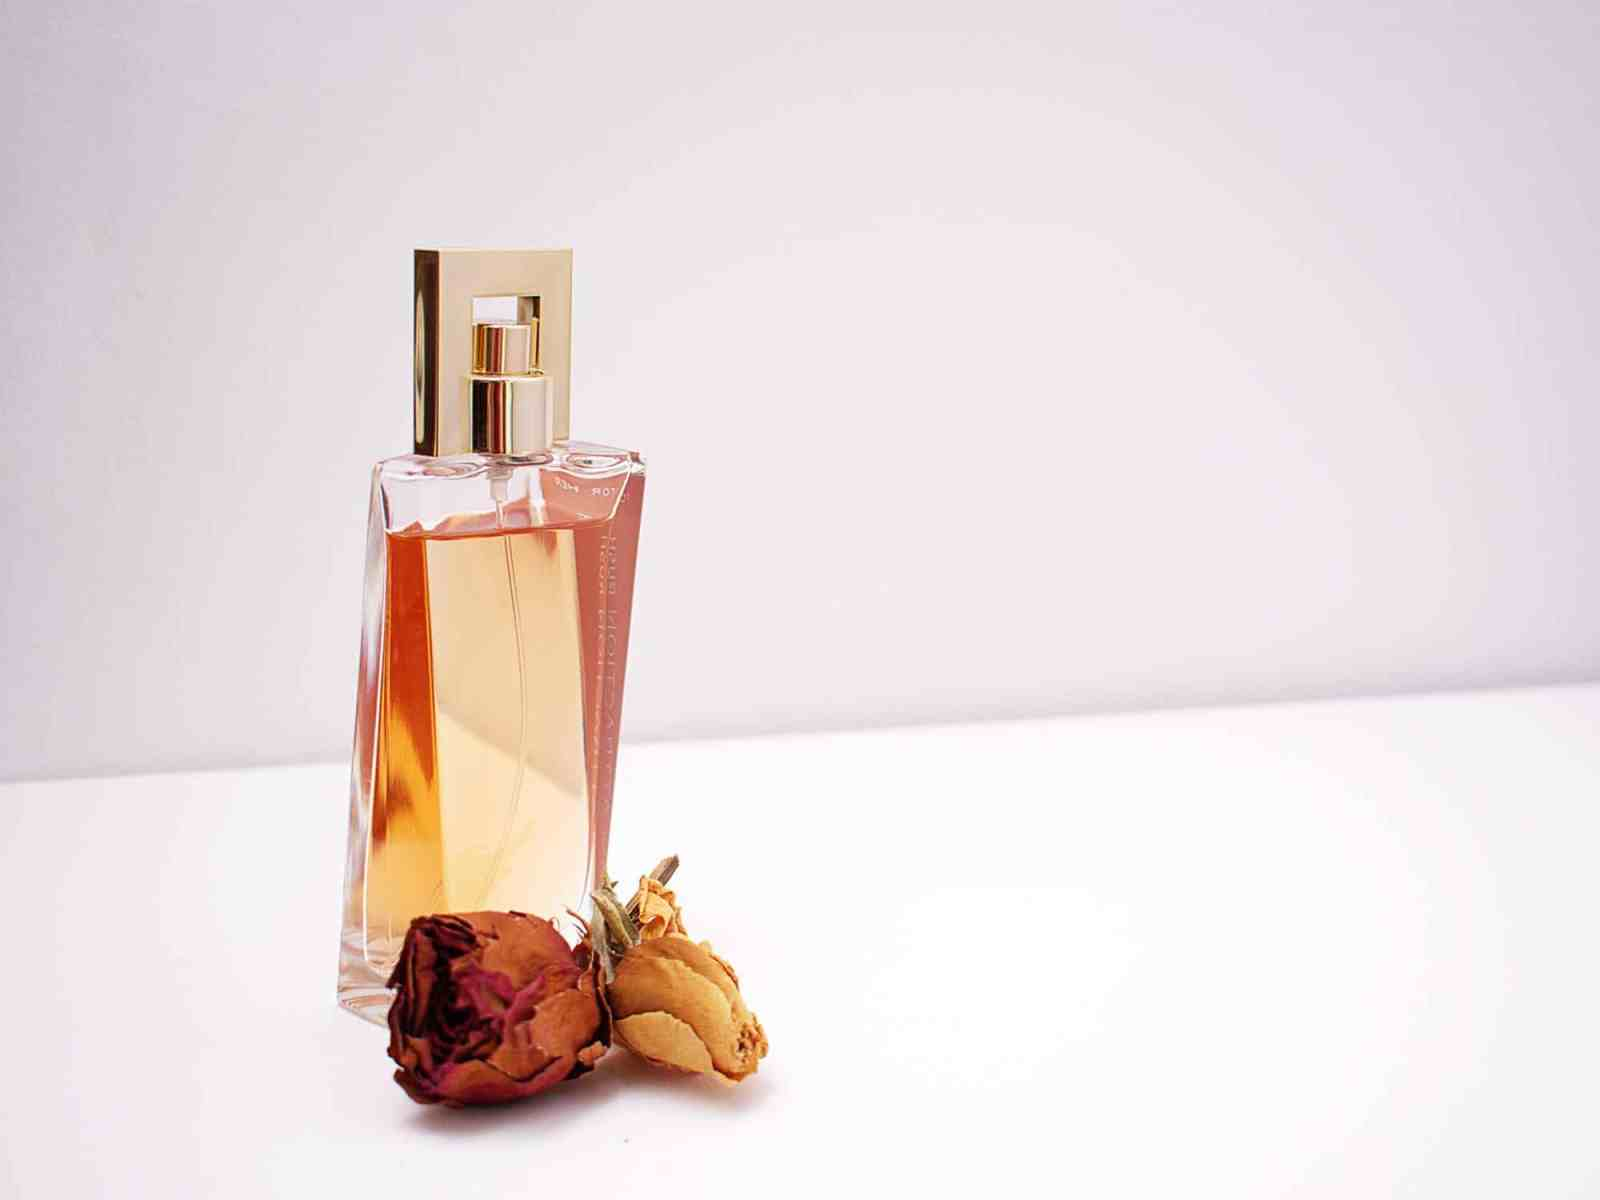 With autumn right around the corner you need to add these fall perfumes to your collection this season! We've listed some of the best!